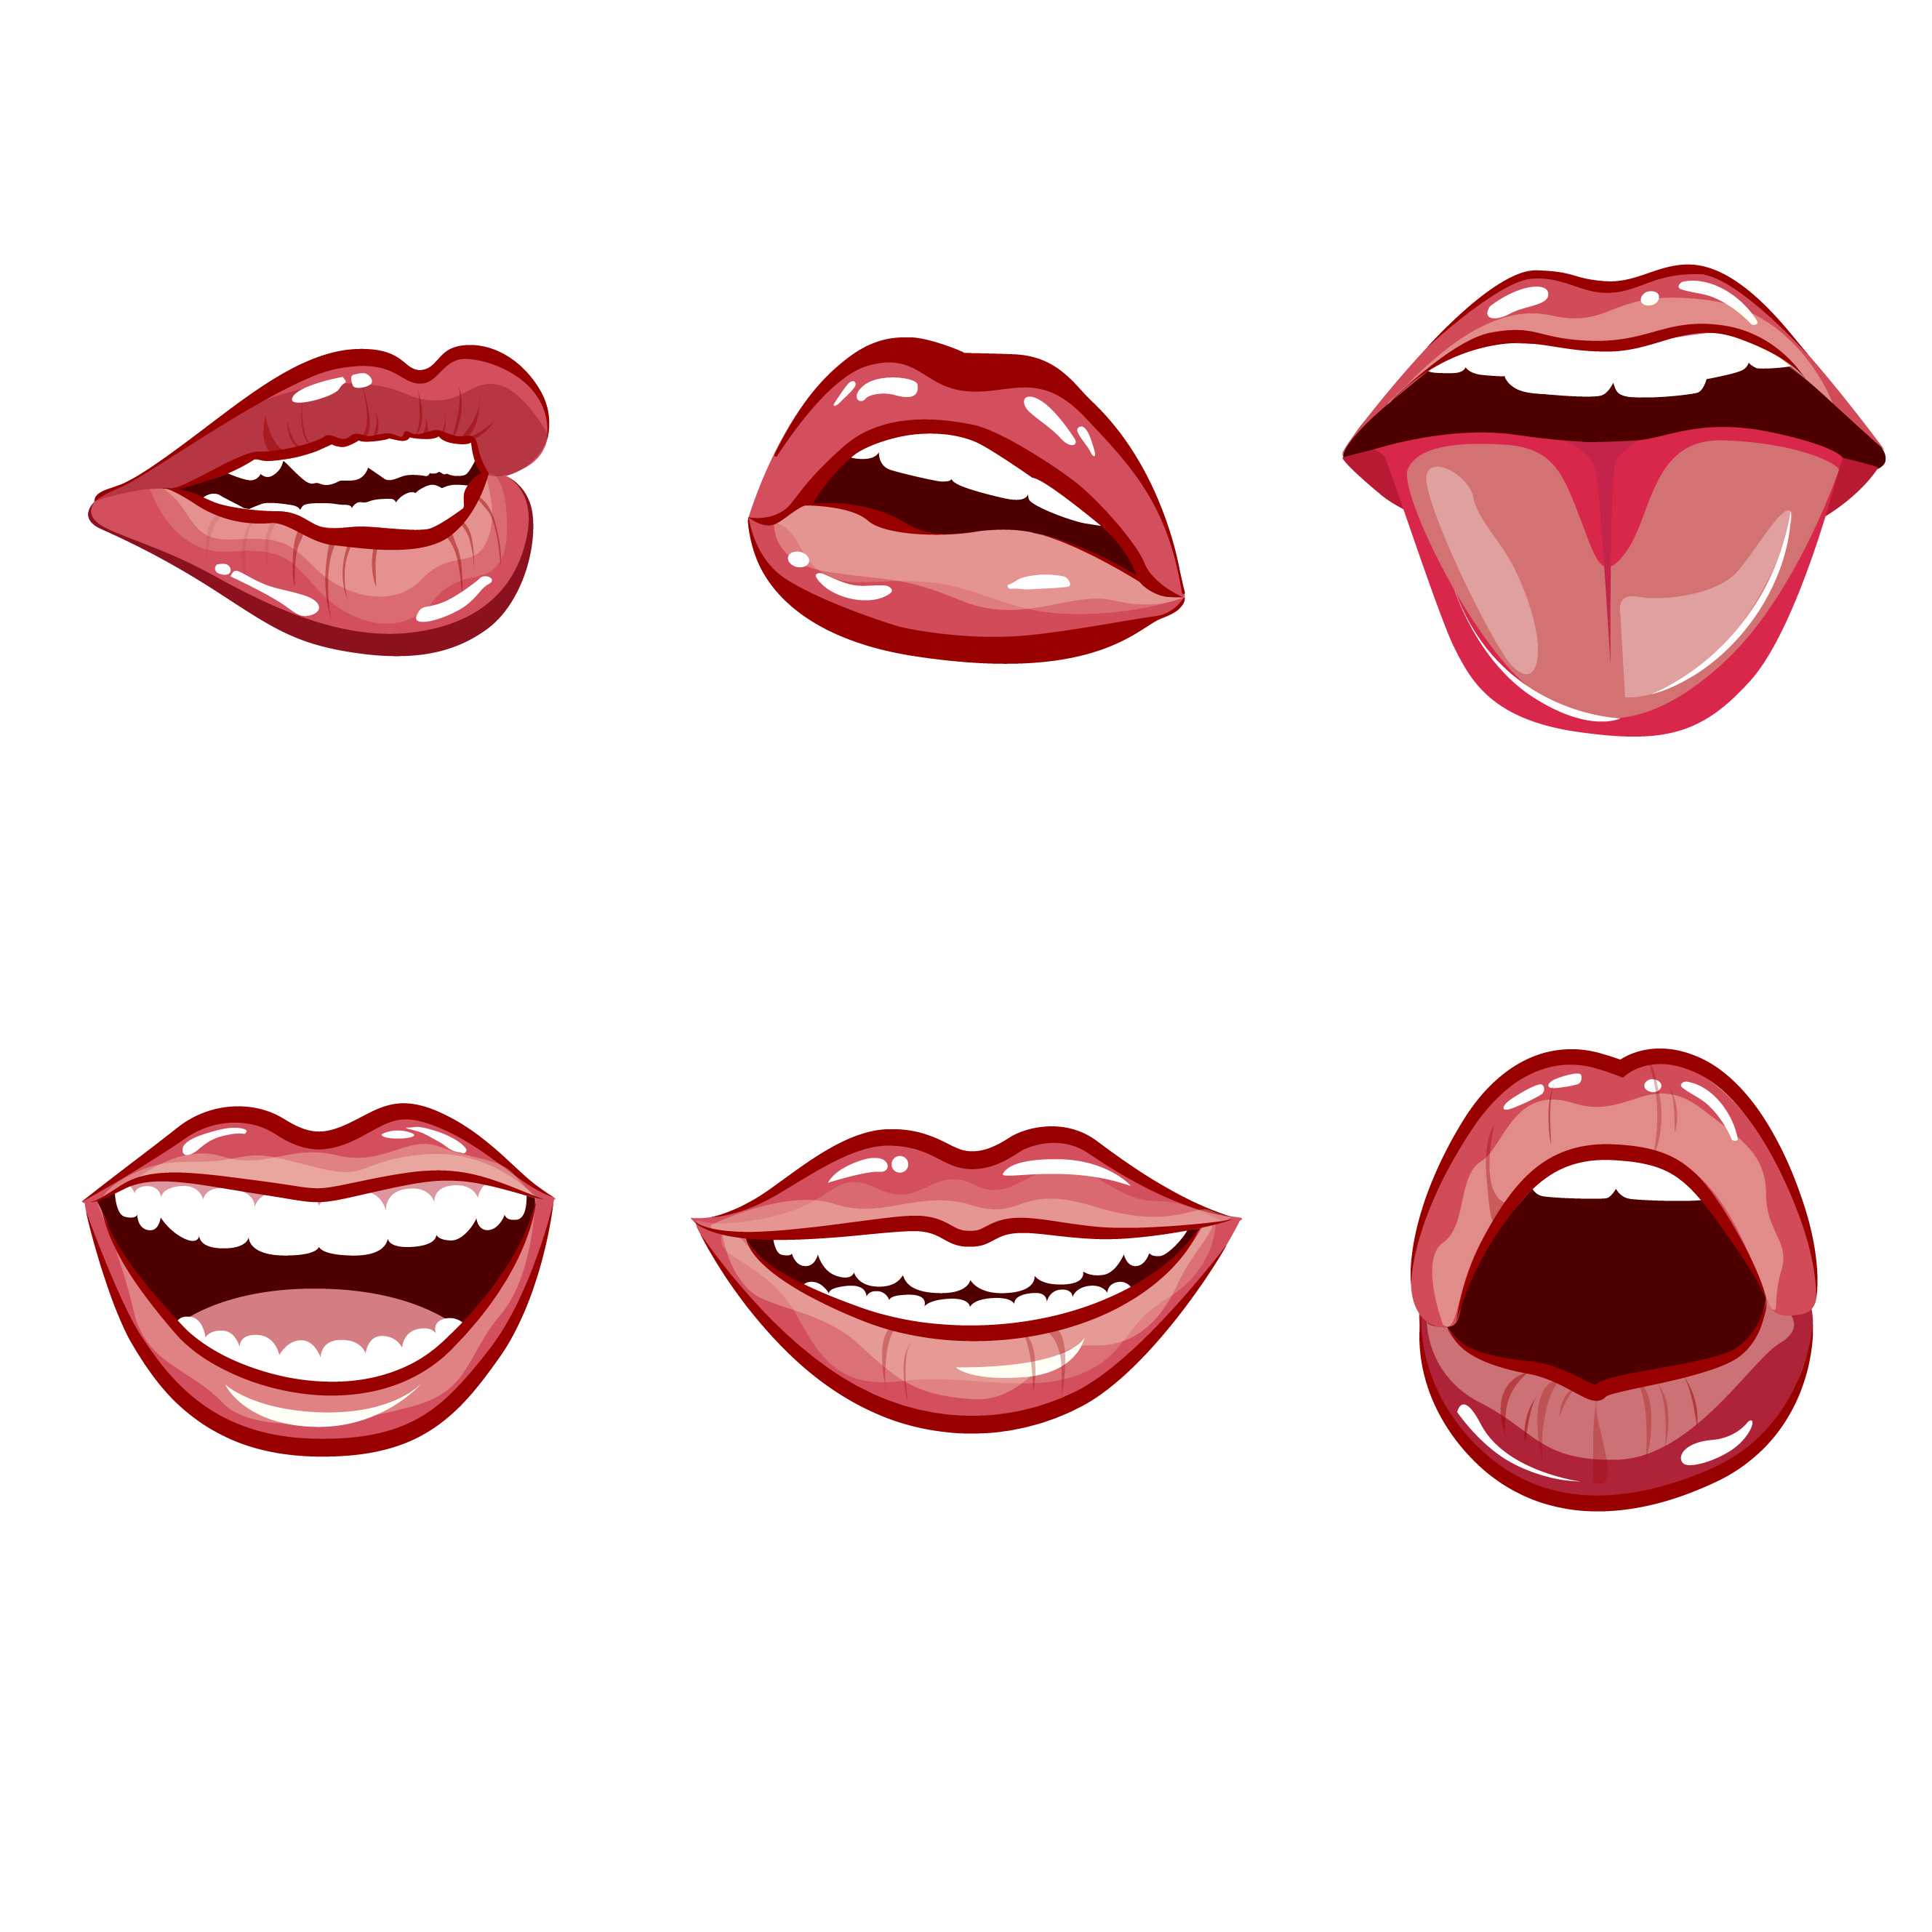 Happy Laughing Female Mouth With Red Lips By 09910190 Thehungryjpeg Com Sponsored Female Sponsored Mouth Happy Laughing Red Lips Female Lips